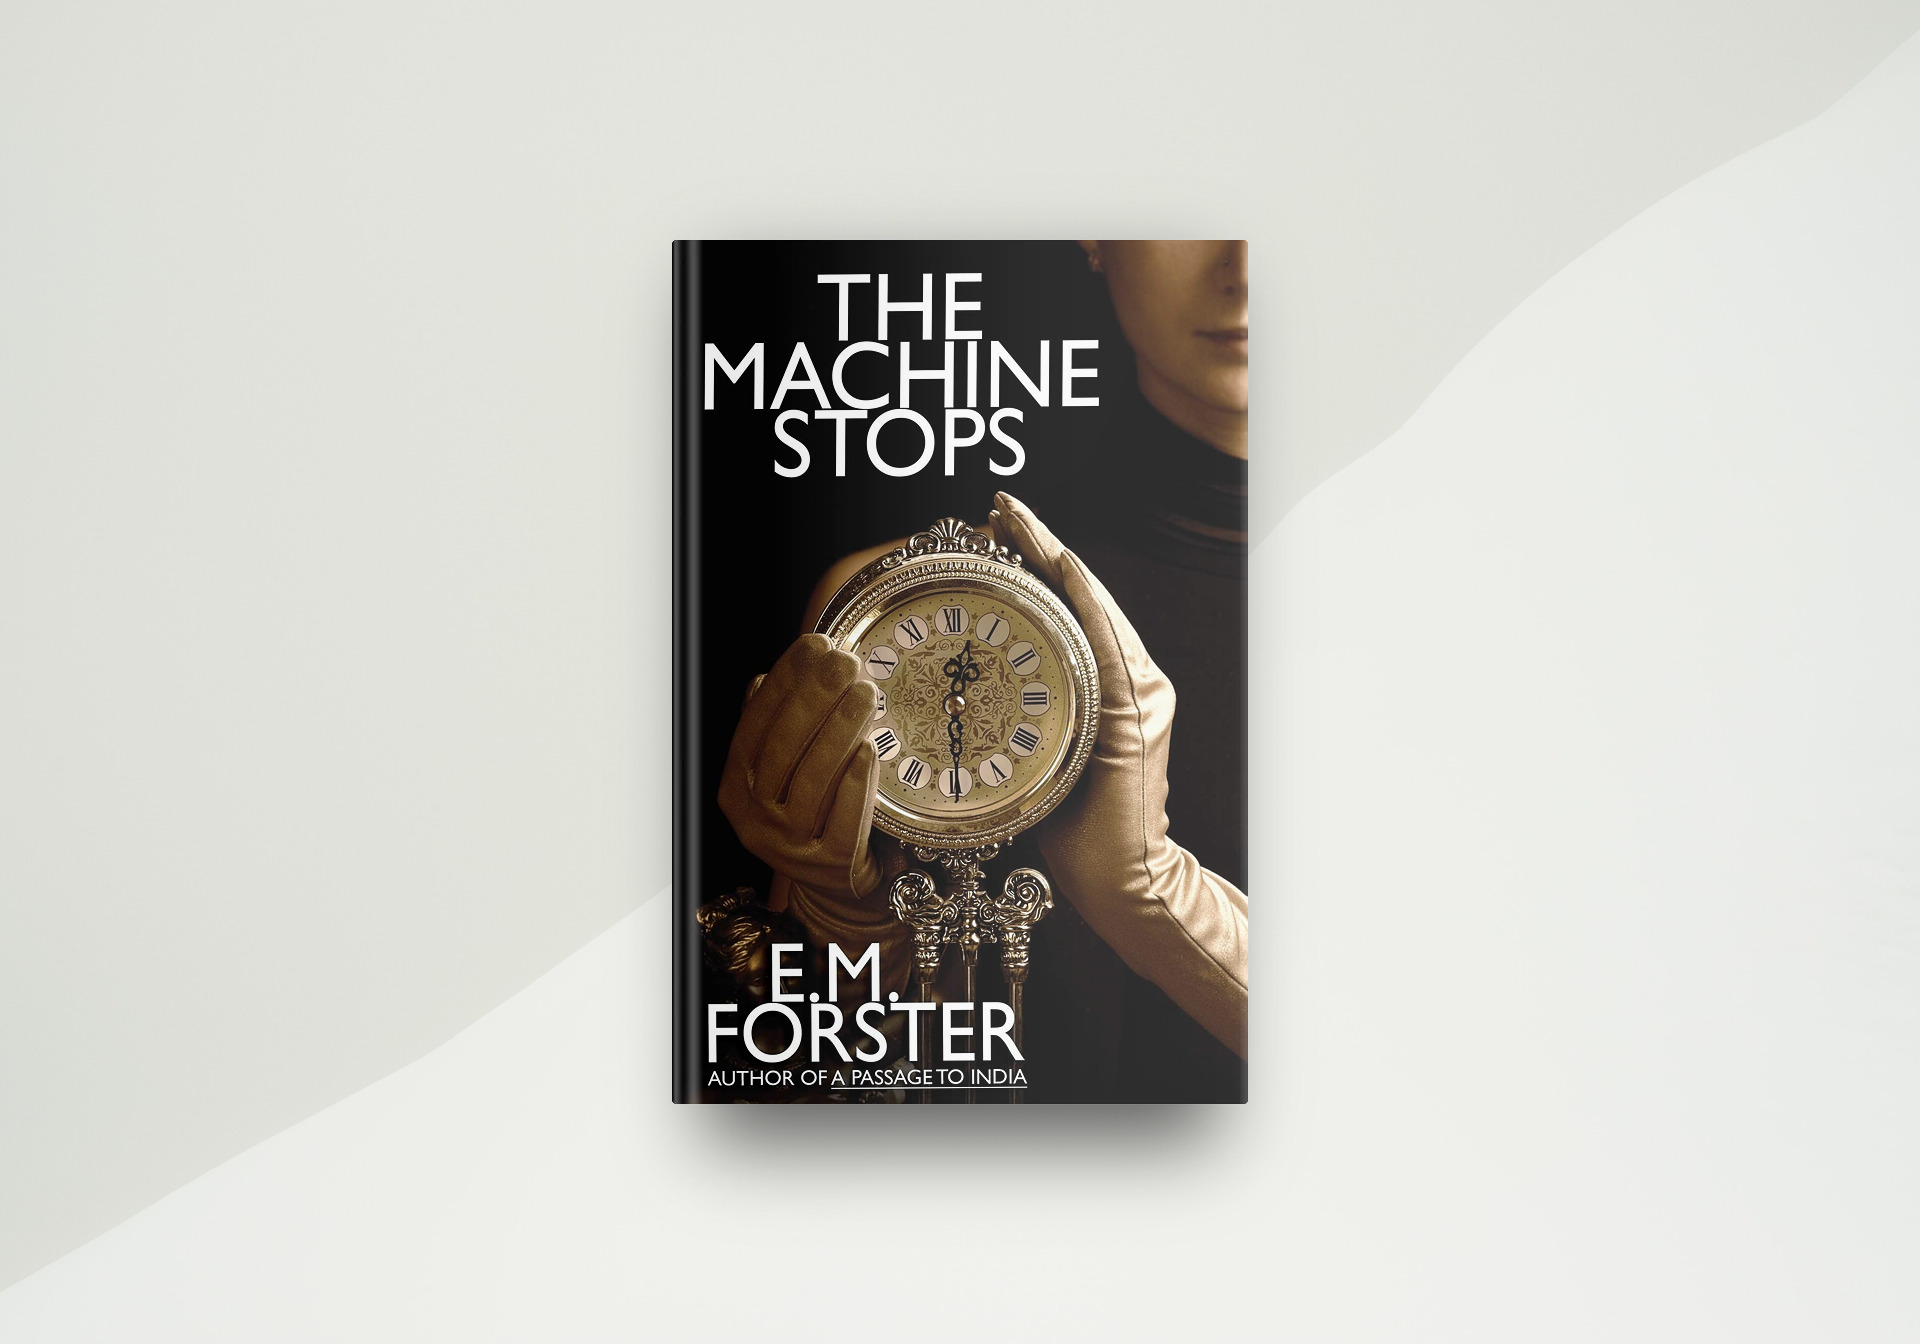 The Machine Stops By E. M. Forster - Book Cover